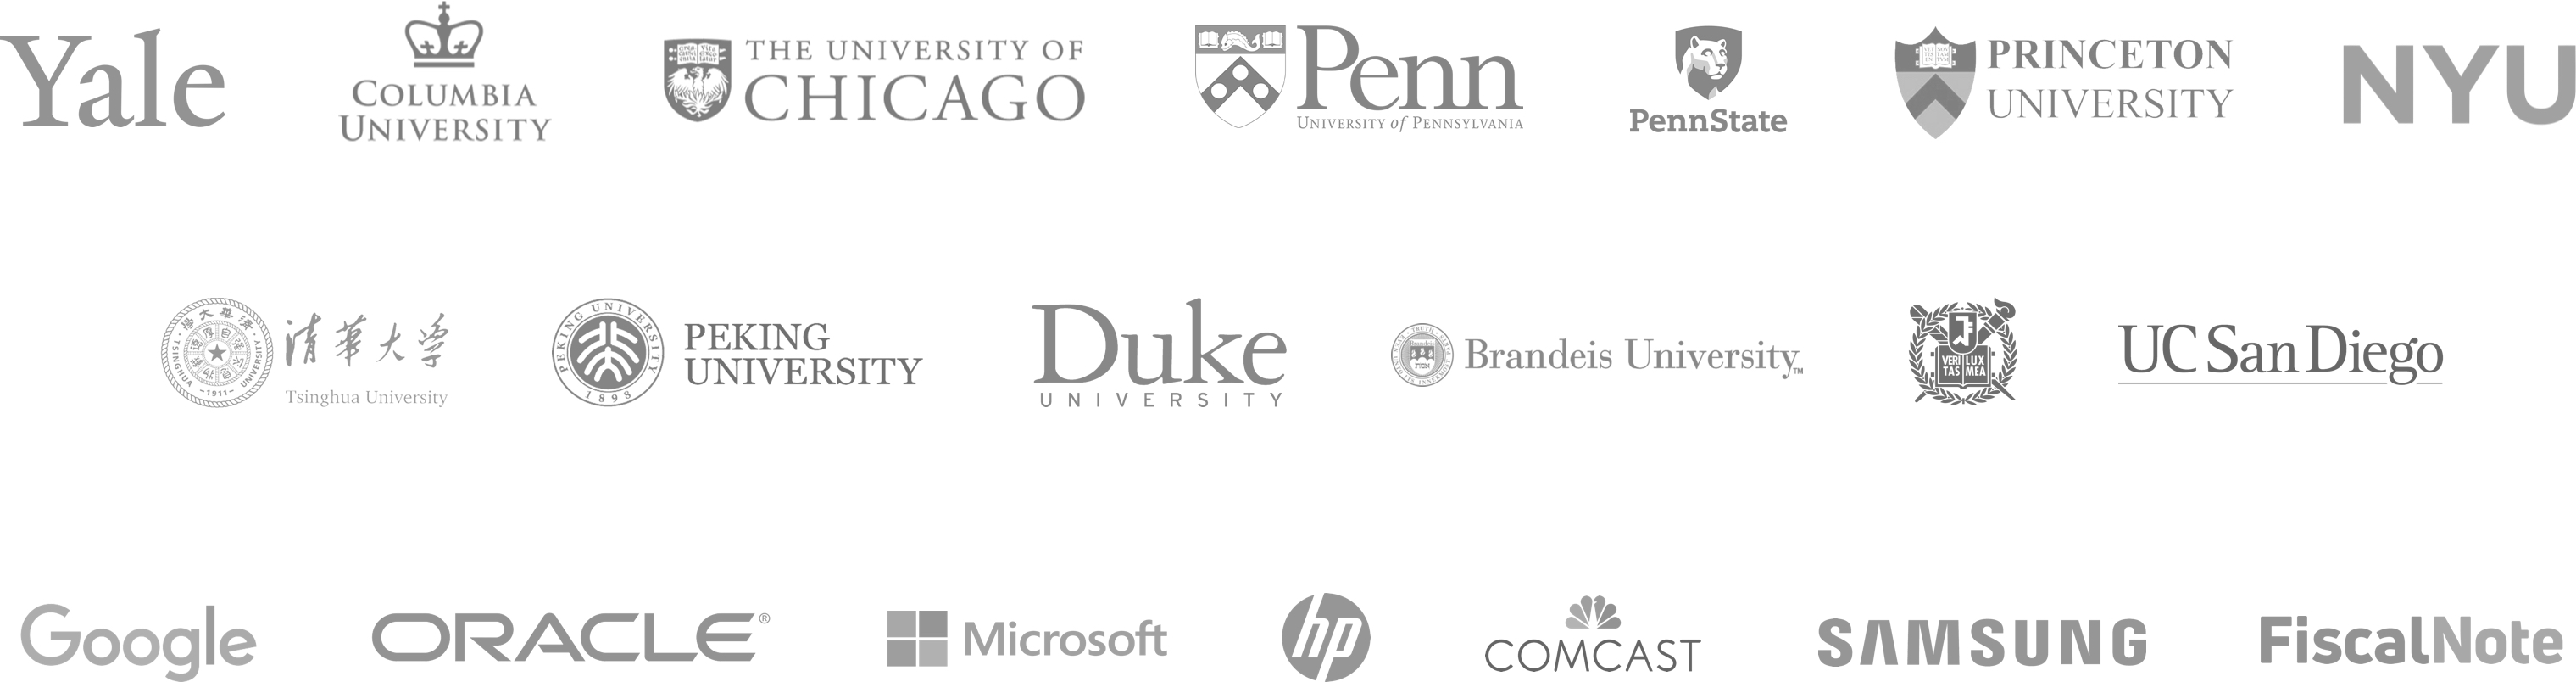 Logos of Schools and Companies